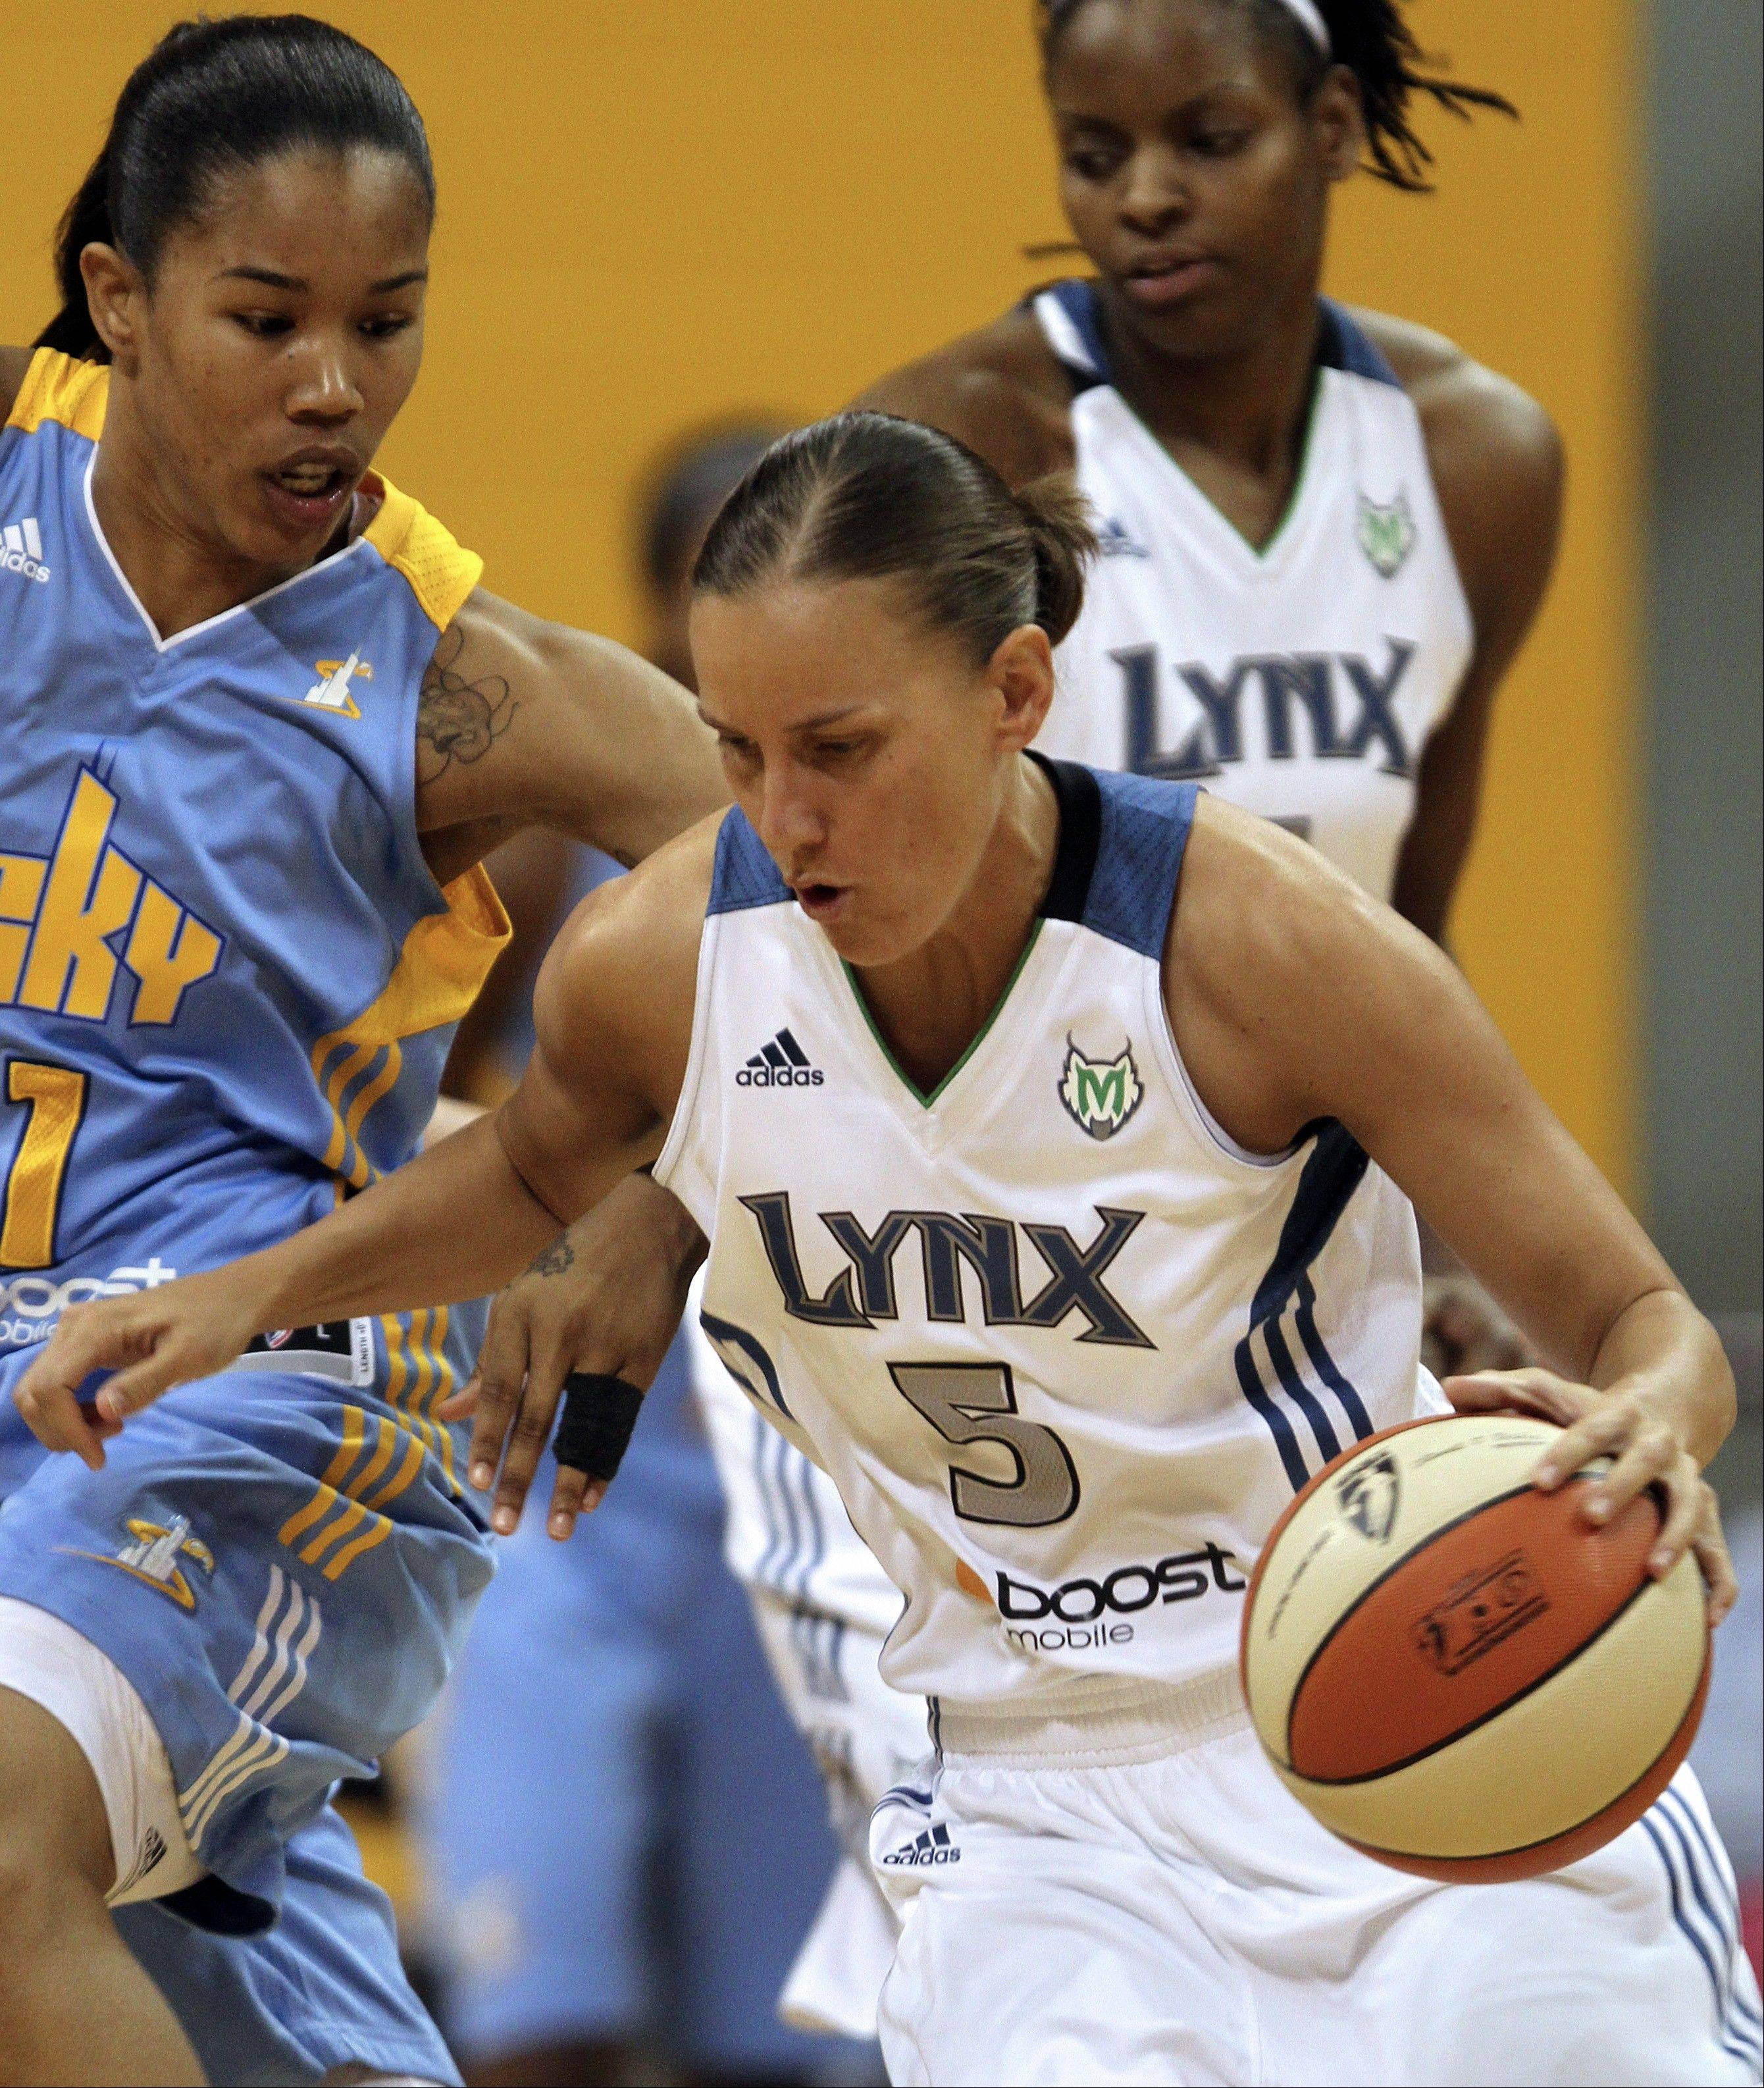 After 10 years in the WNBA, 3-point specialist Erin Thorn may grab her first championship with the Minnesota Lynx.